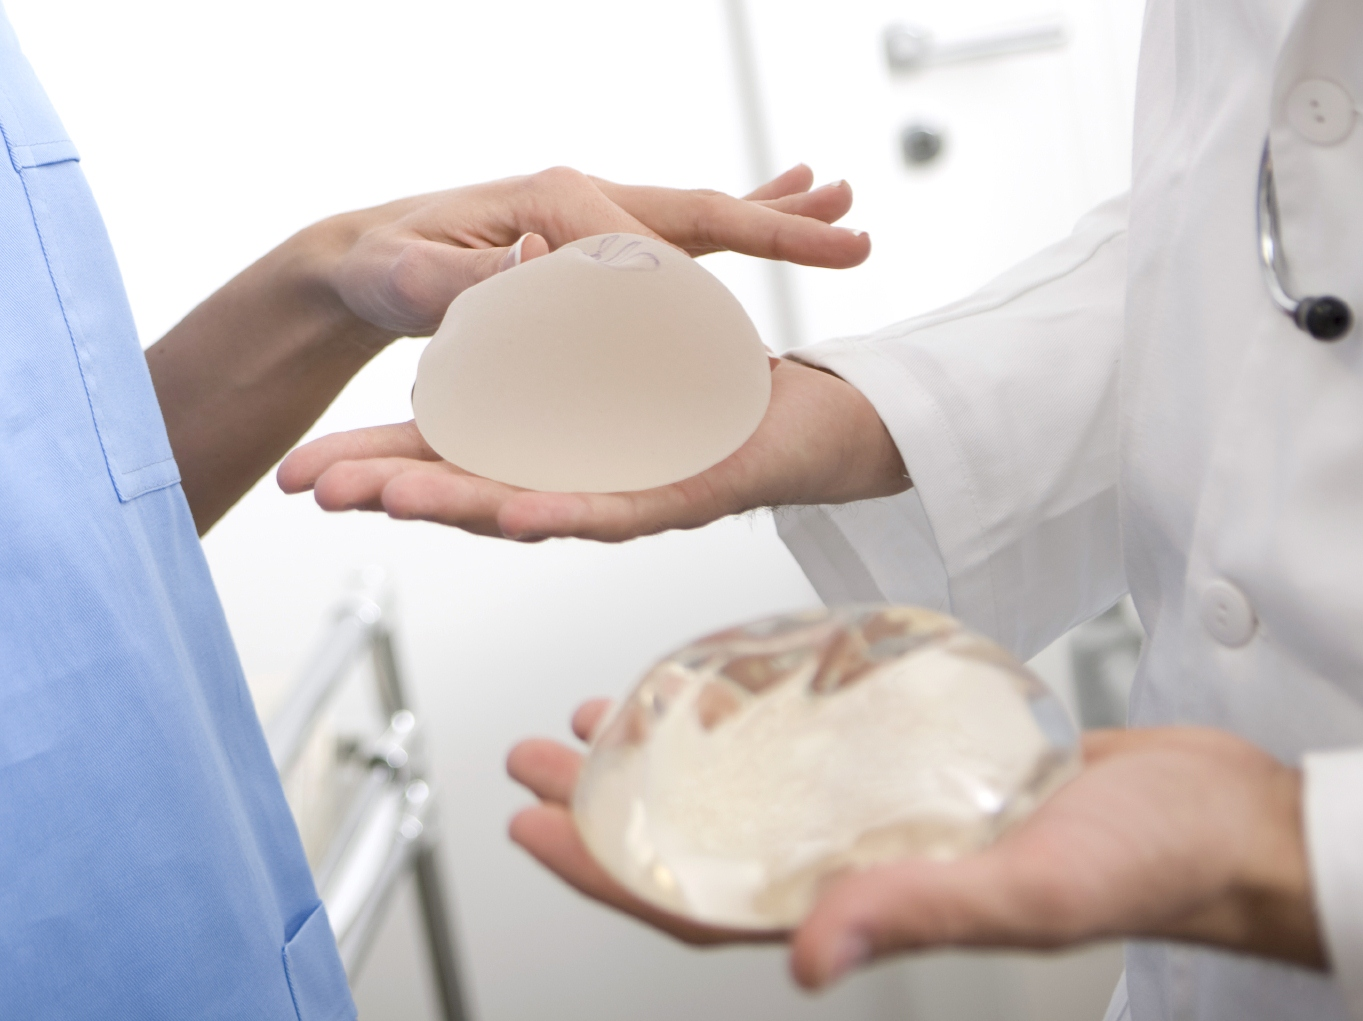 Do breast implants feel real